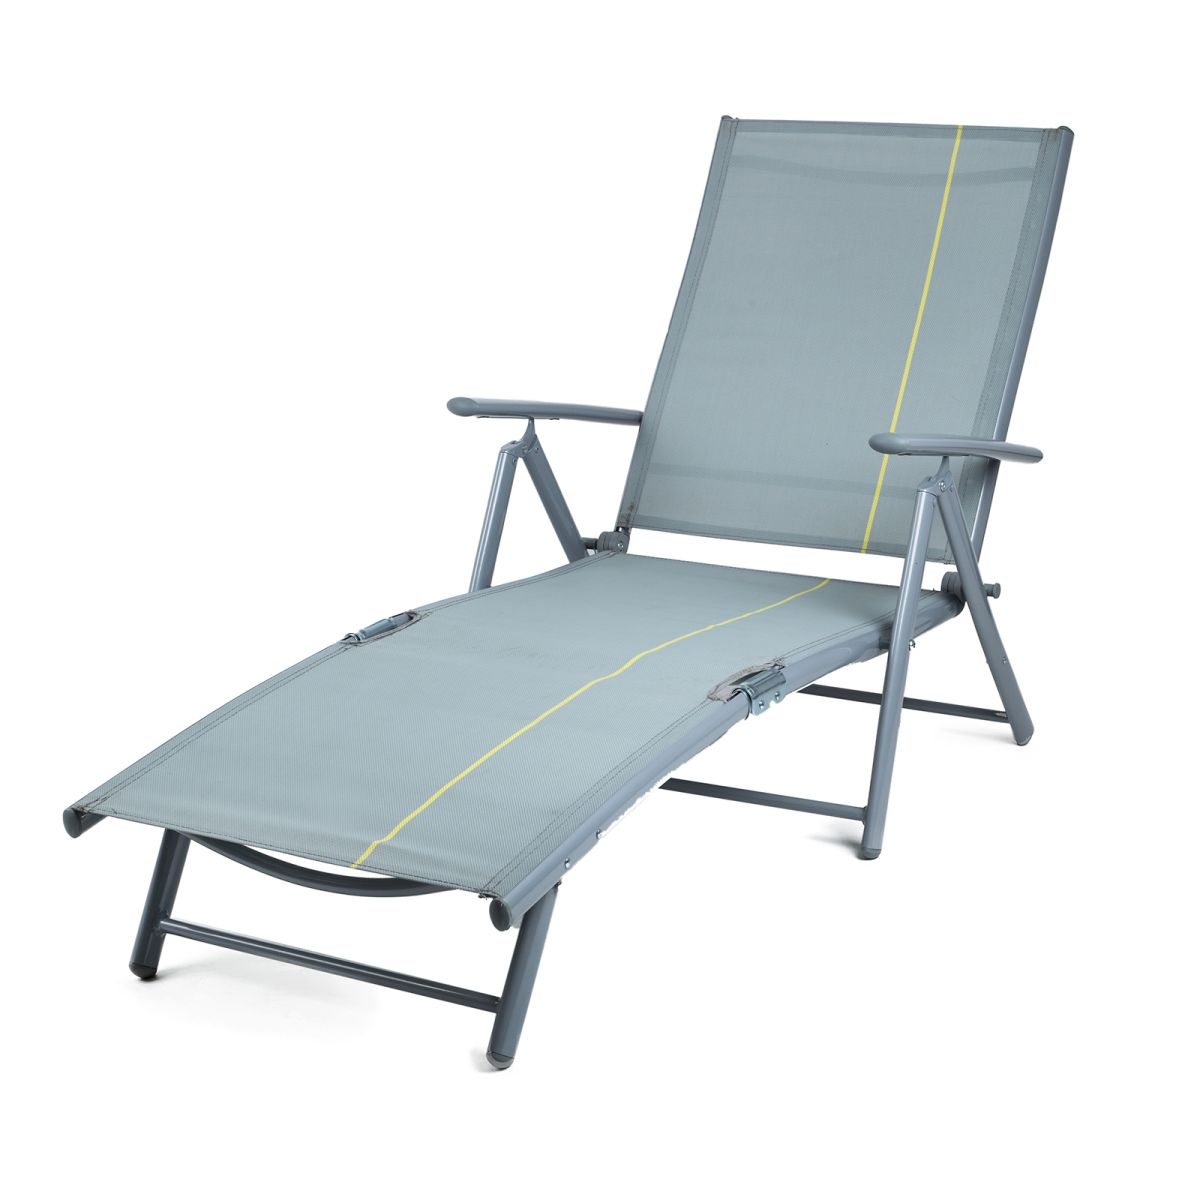 Garden sun deck chair chaise lounge relax lounger for 3 in 1 beach chaise lounge